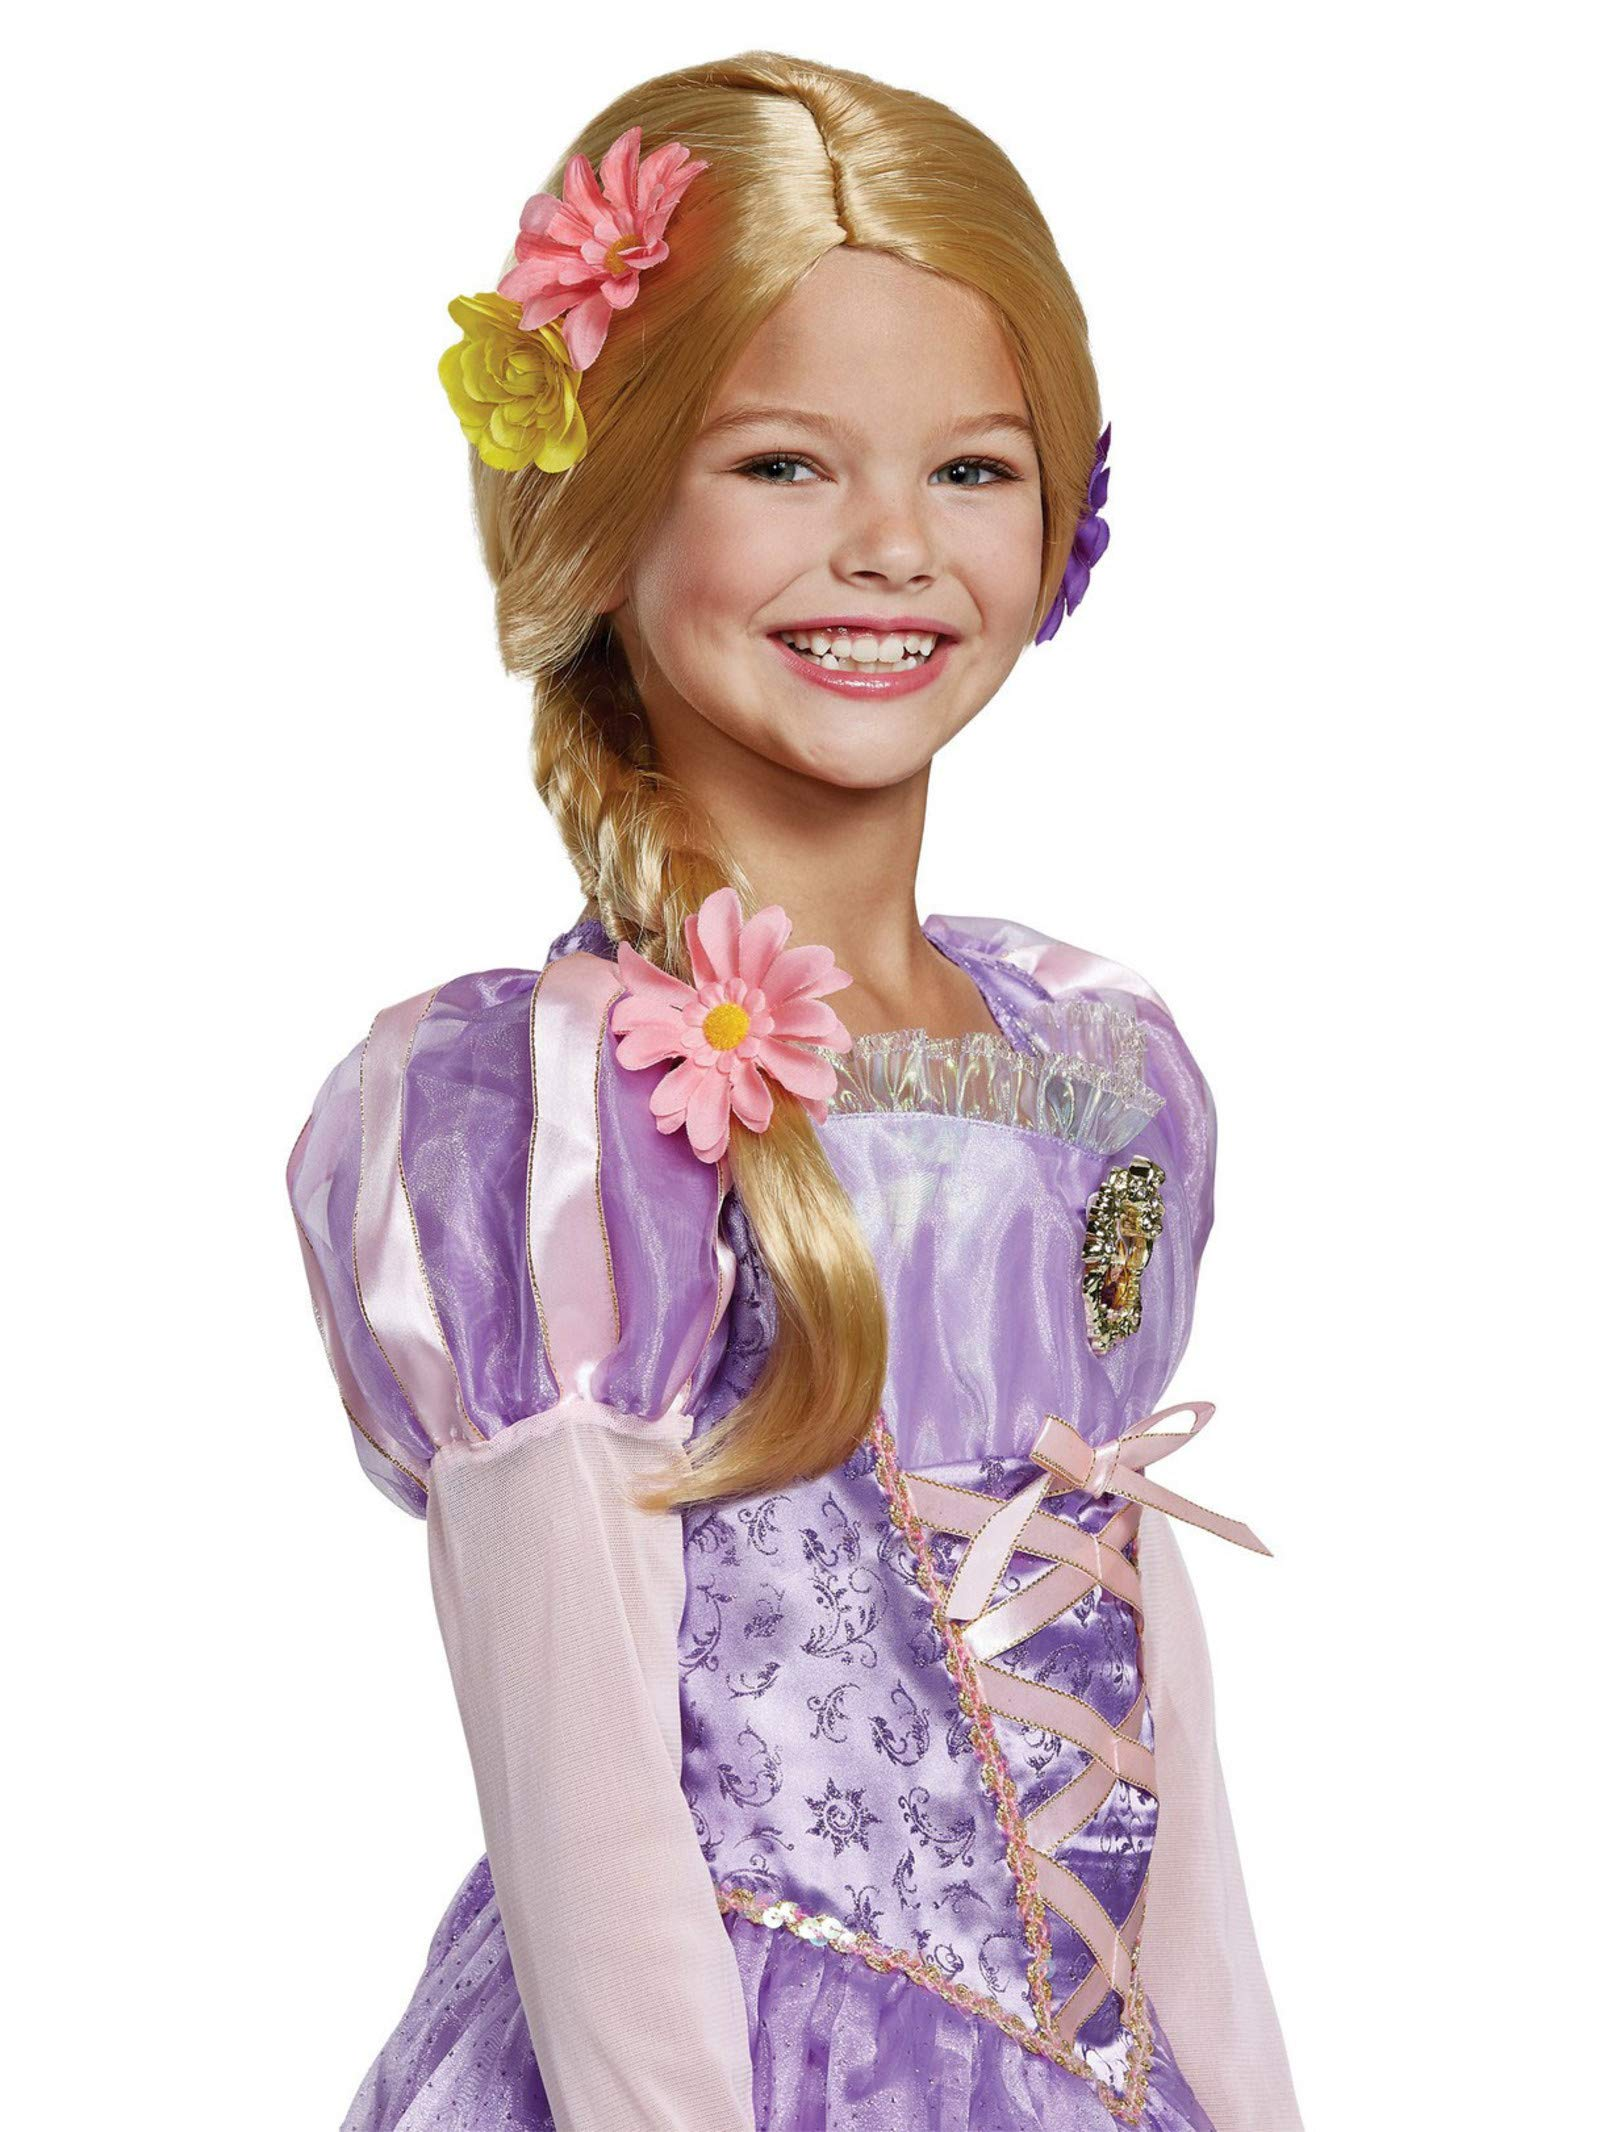 Disney Princess Rapunzel Tangled Deluxe Girls' Wig by Disguise